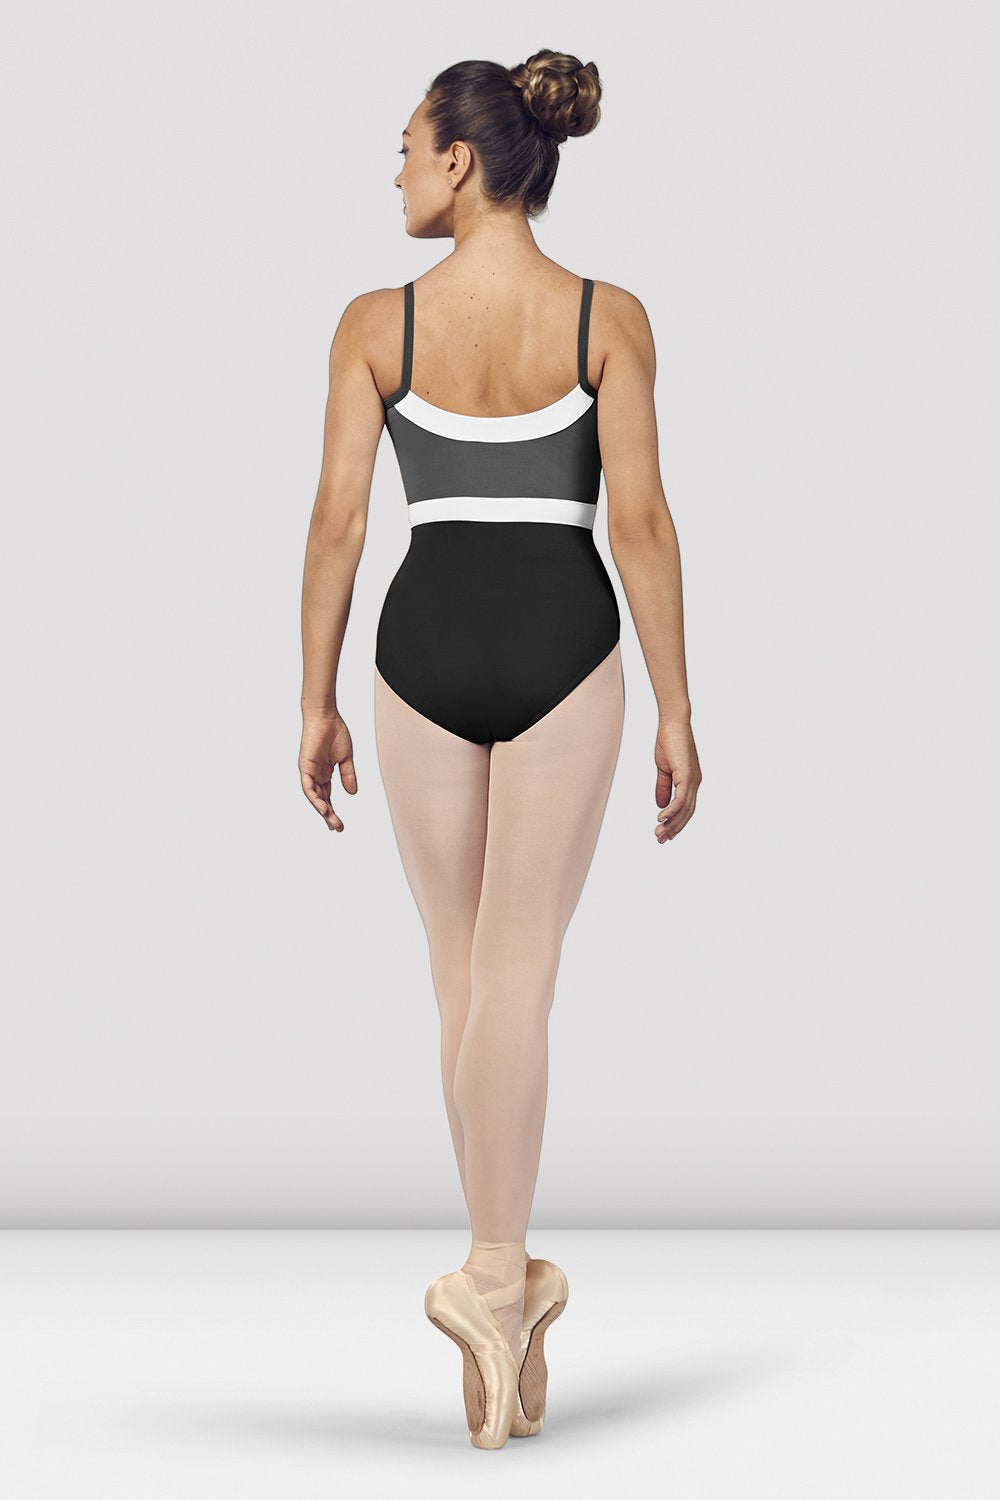 Black Bloch Ladies Amora Camisole Leotard on female model en pointe in fifth position facing back